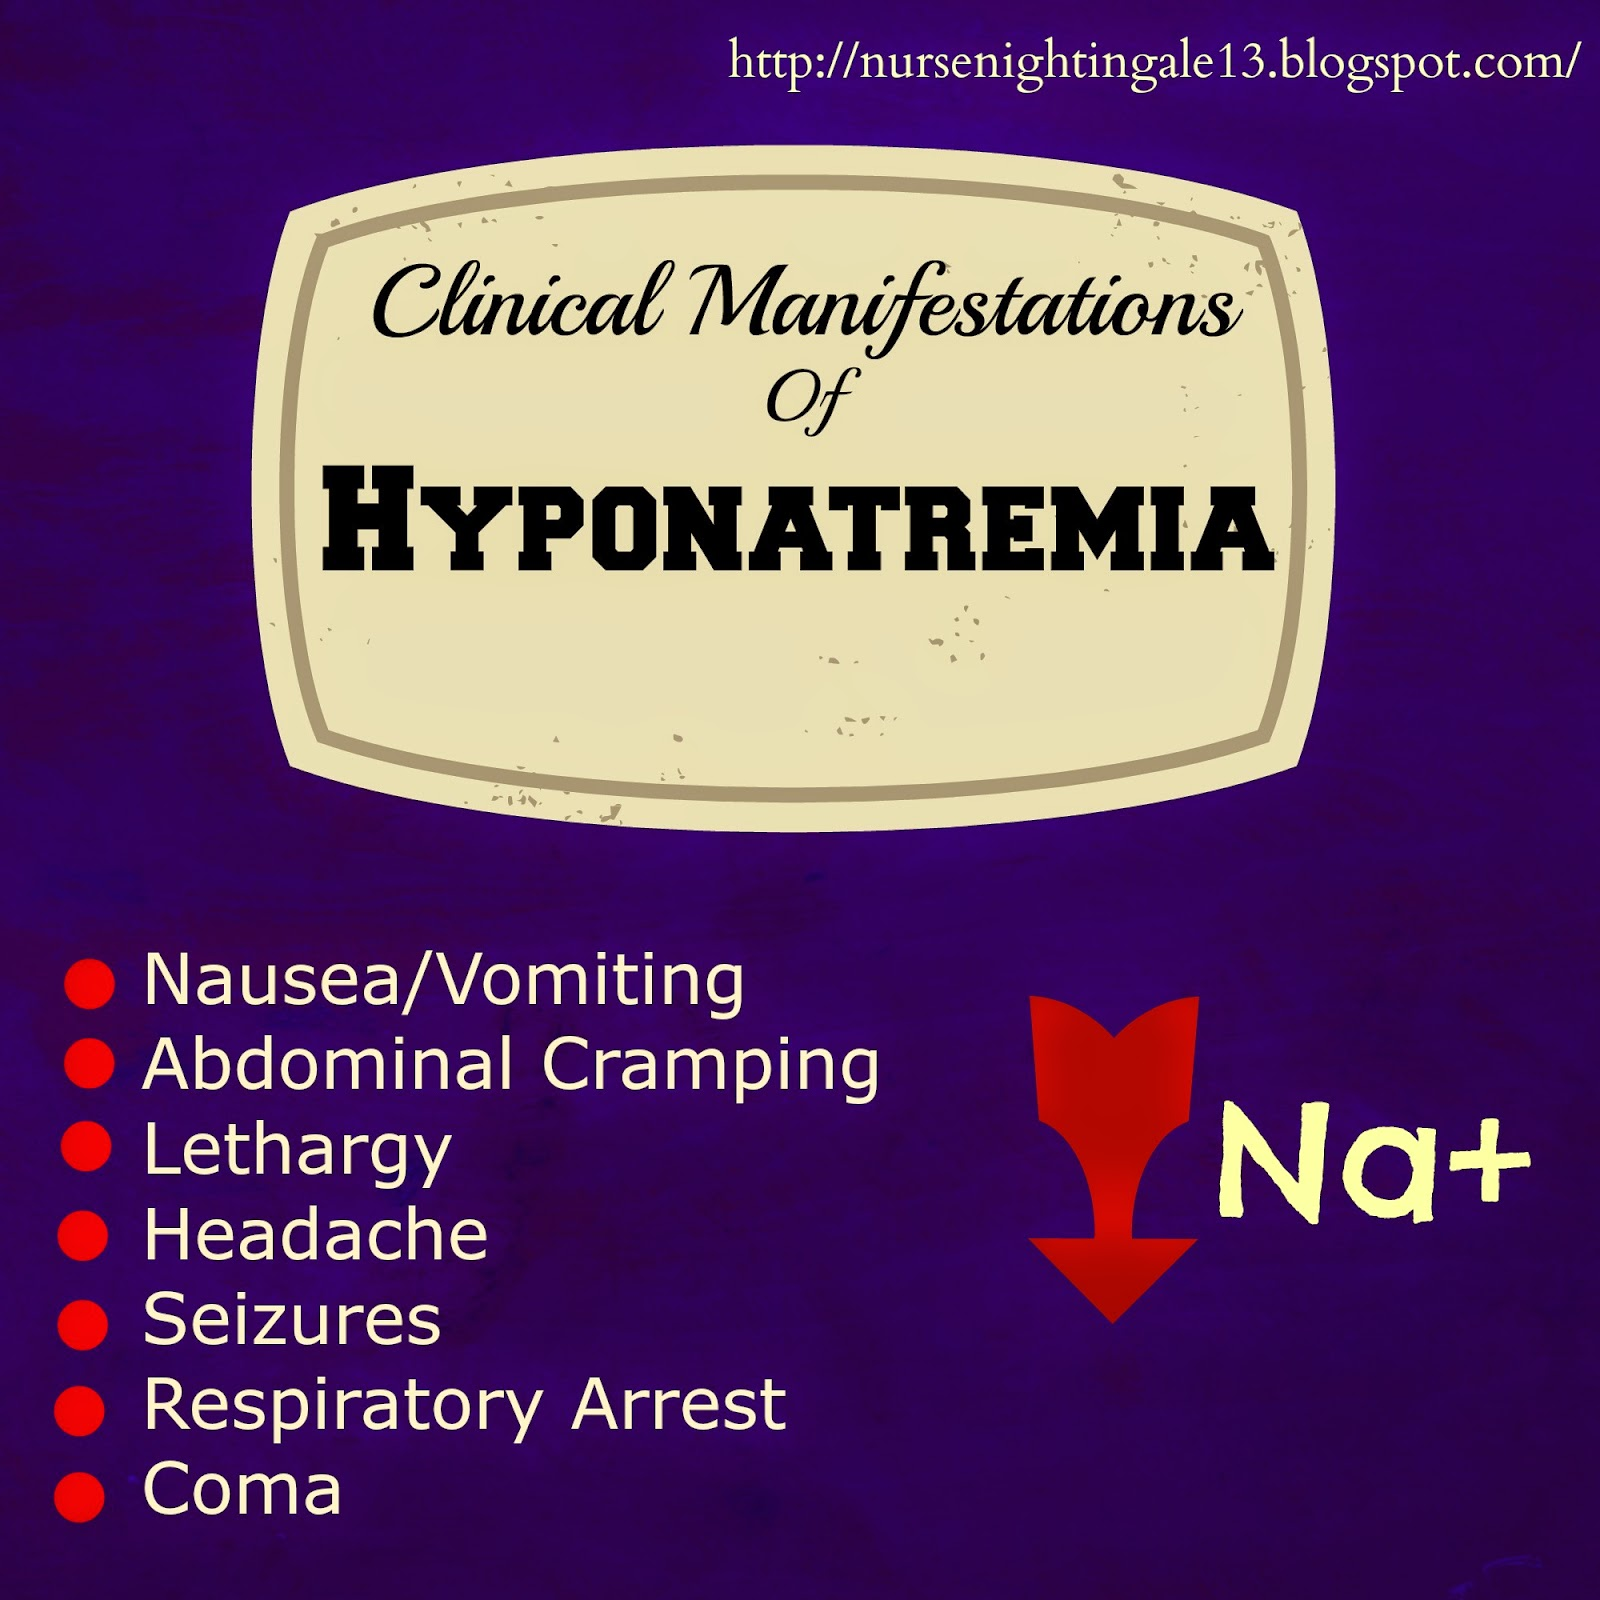 Sodium deficiency, hyponatremia, nurse, electrolyte